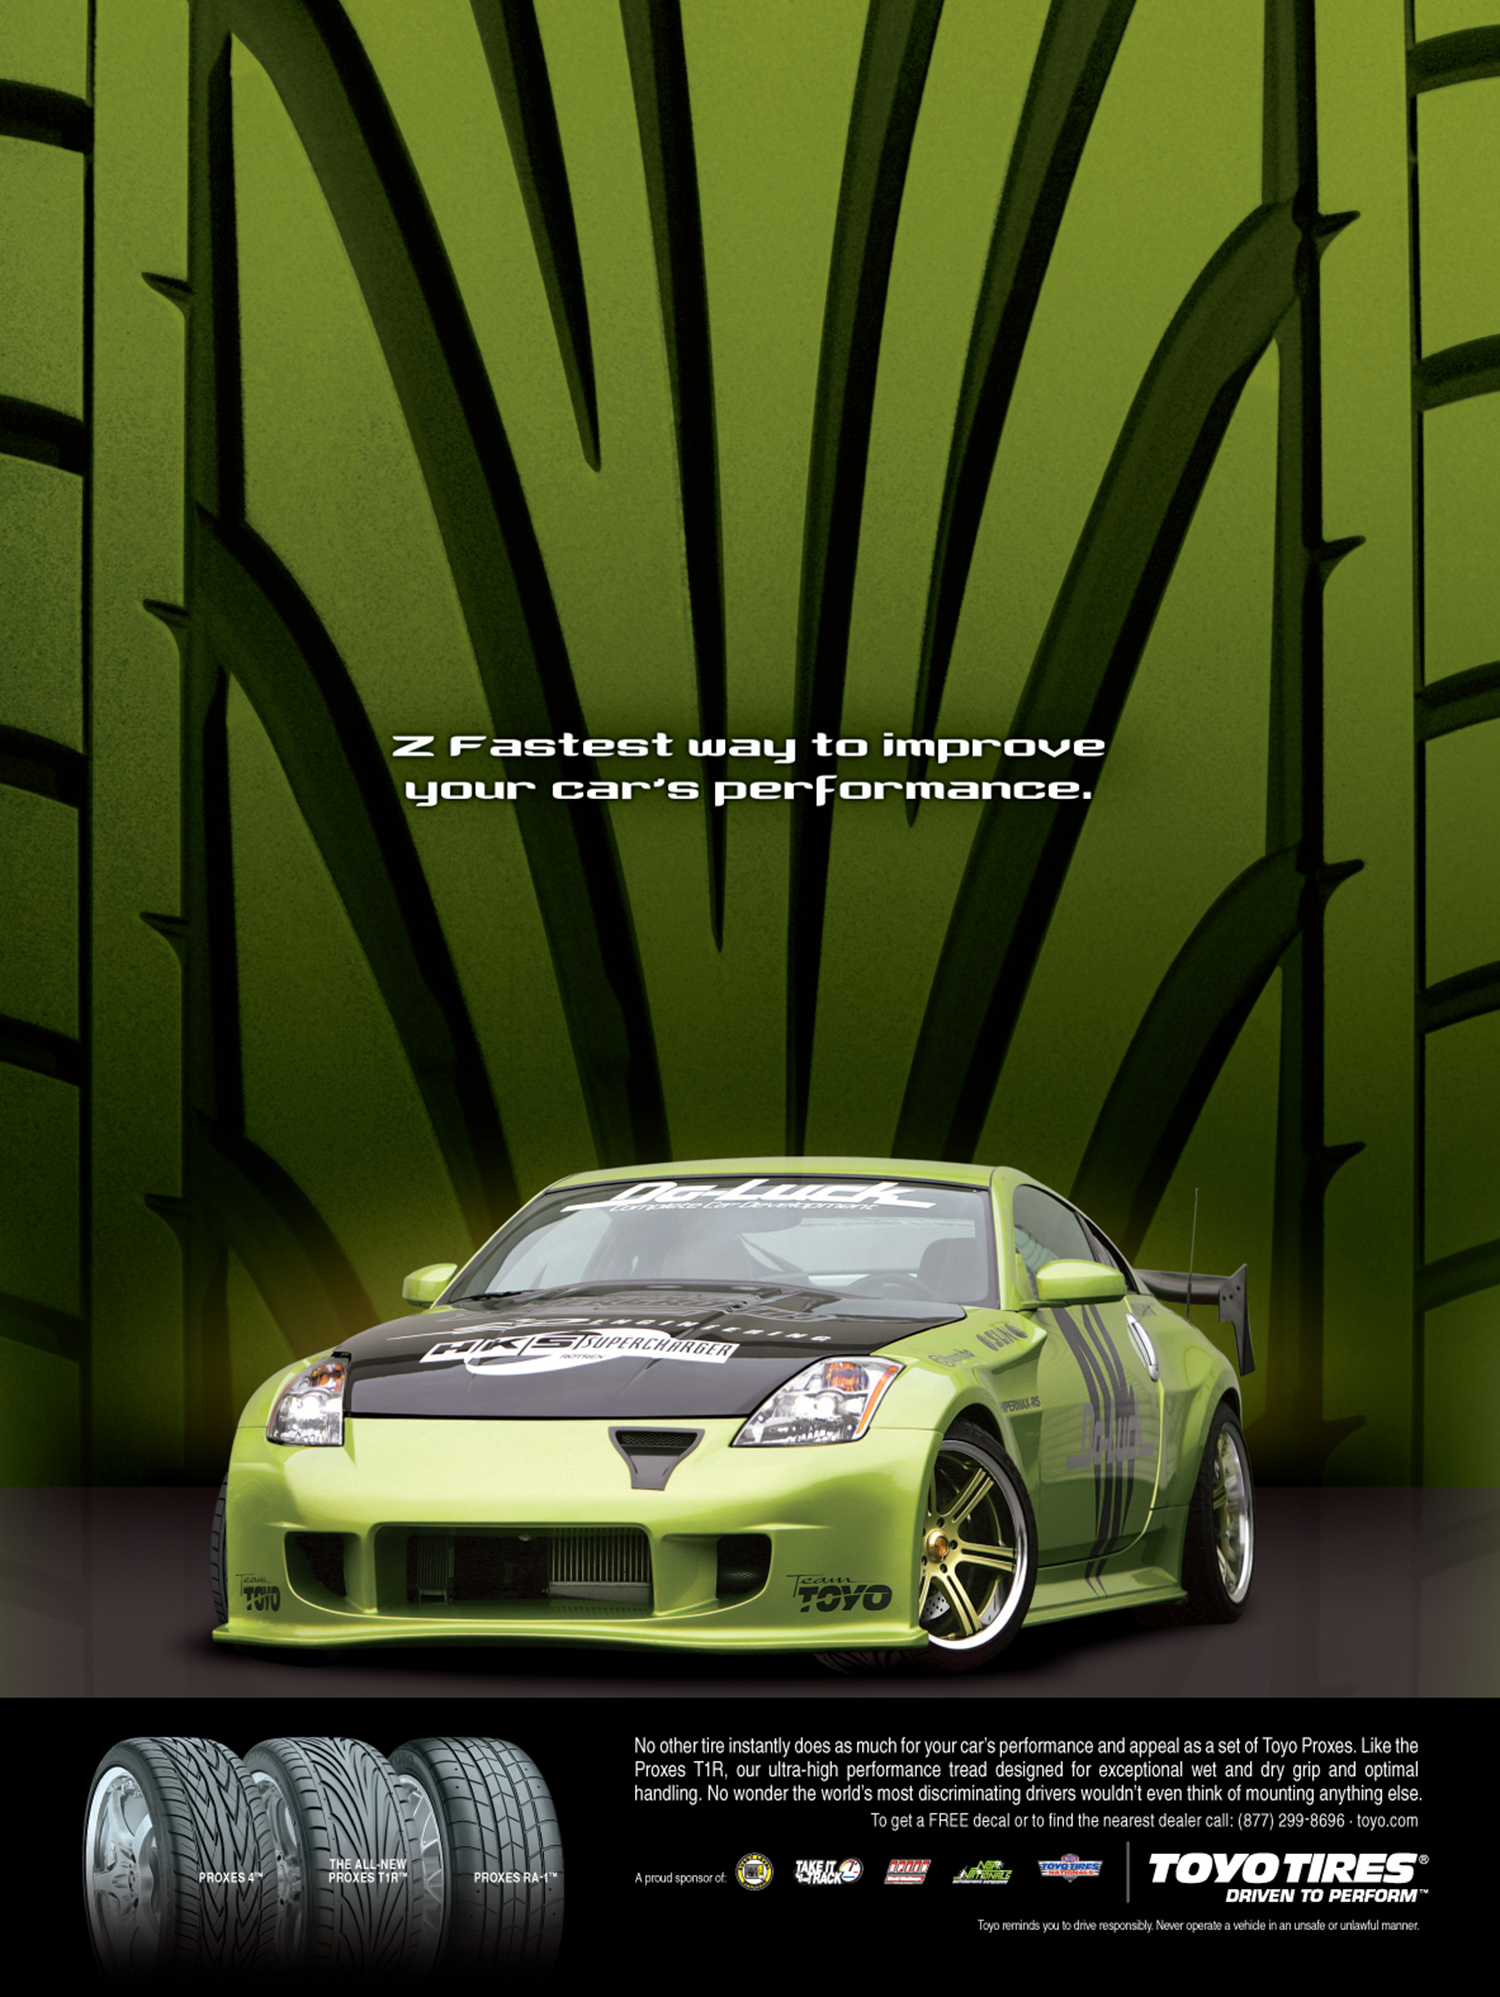 """""""Z Fastest Way to Improve Your Car's Performance"""""""